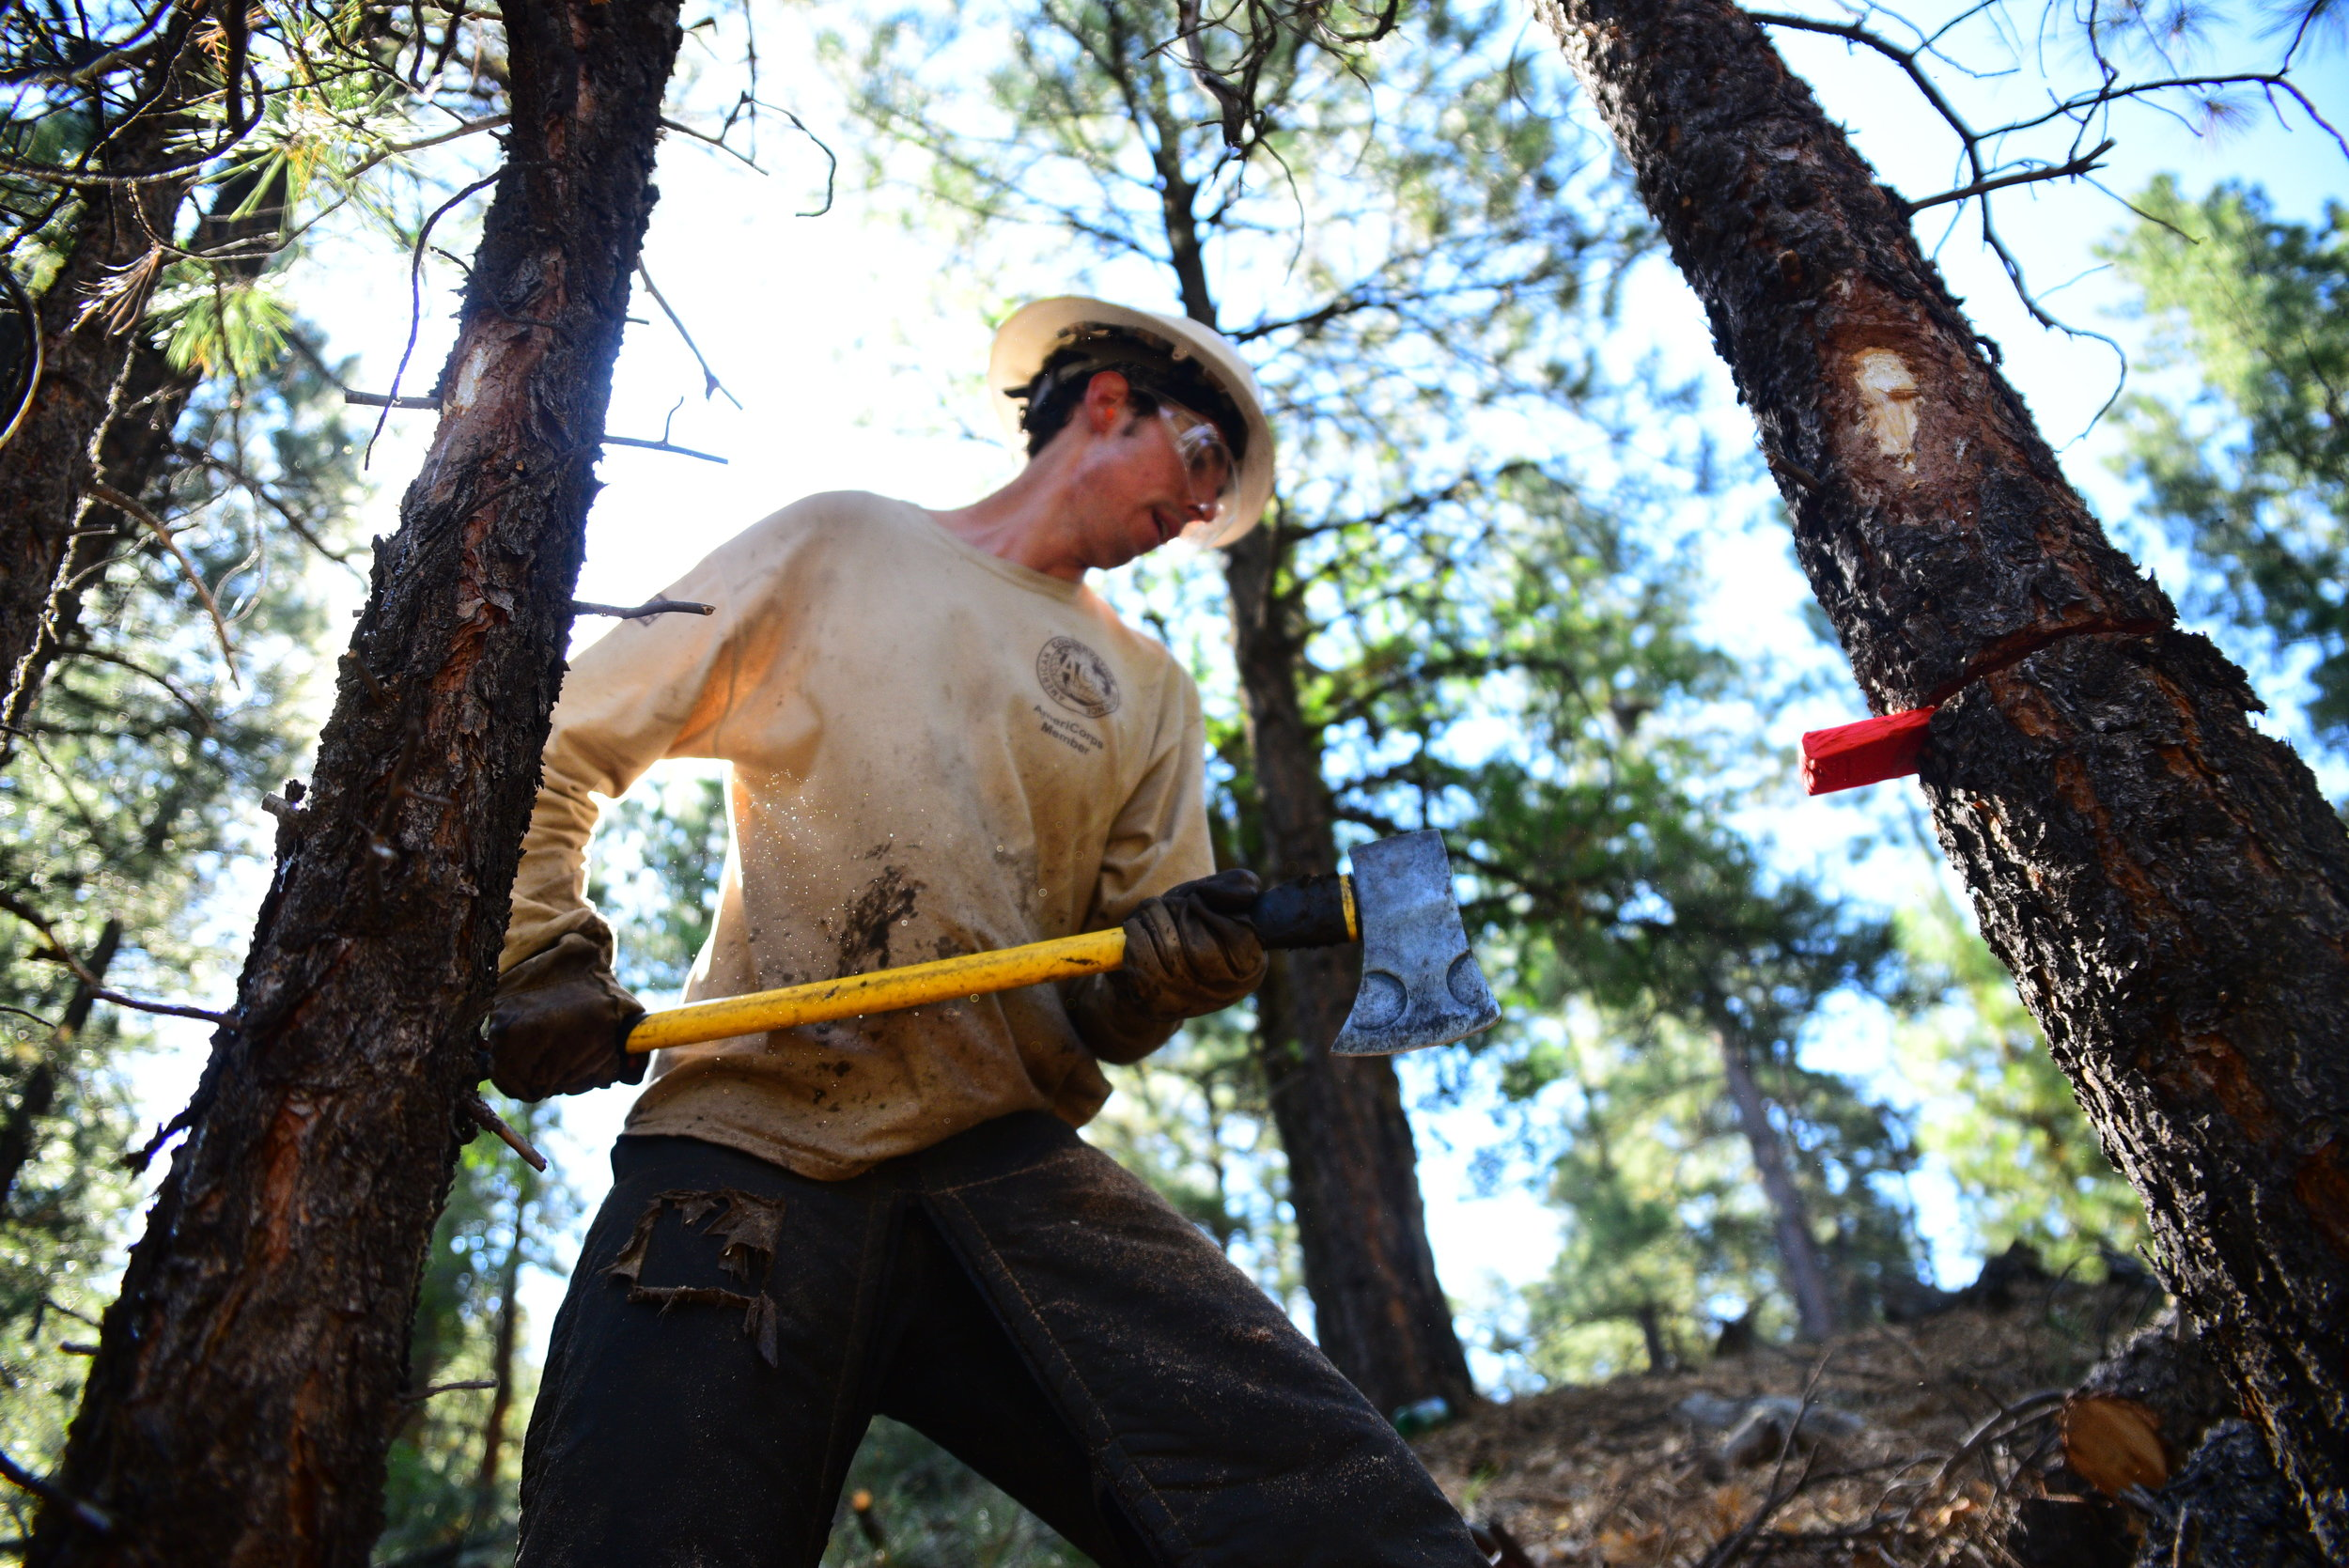 Crew member, Kevin Sperzel uses the end of an axe to pound in a wedge to fell a tree.